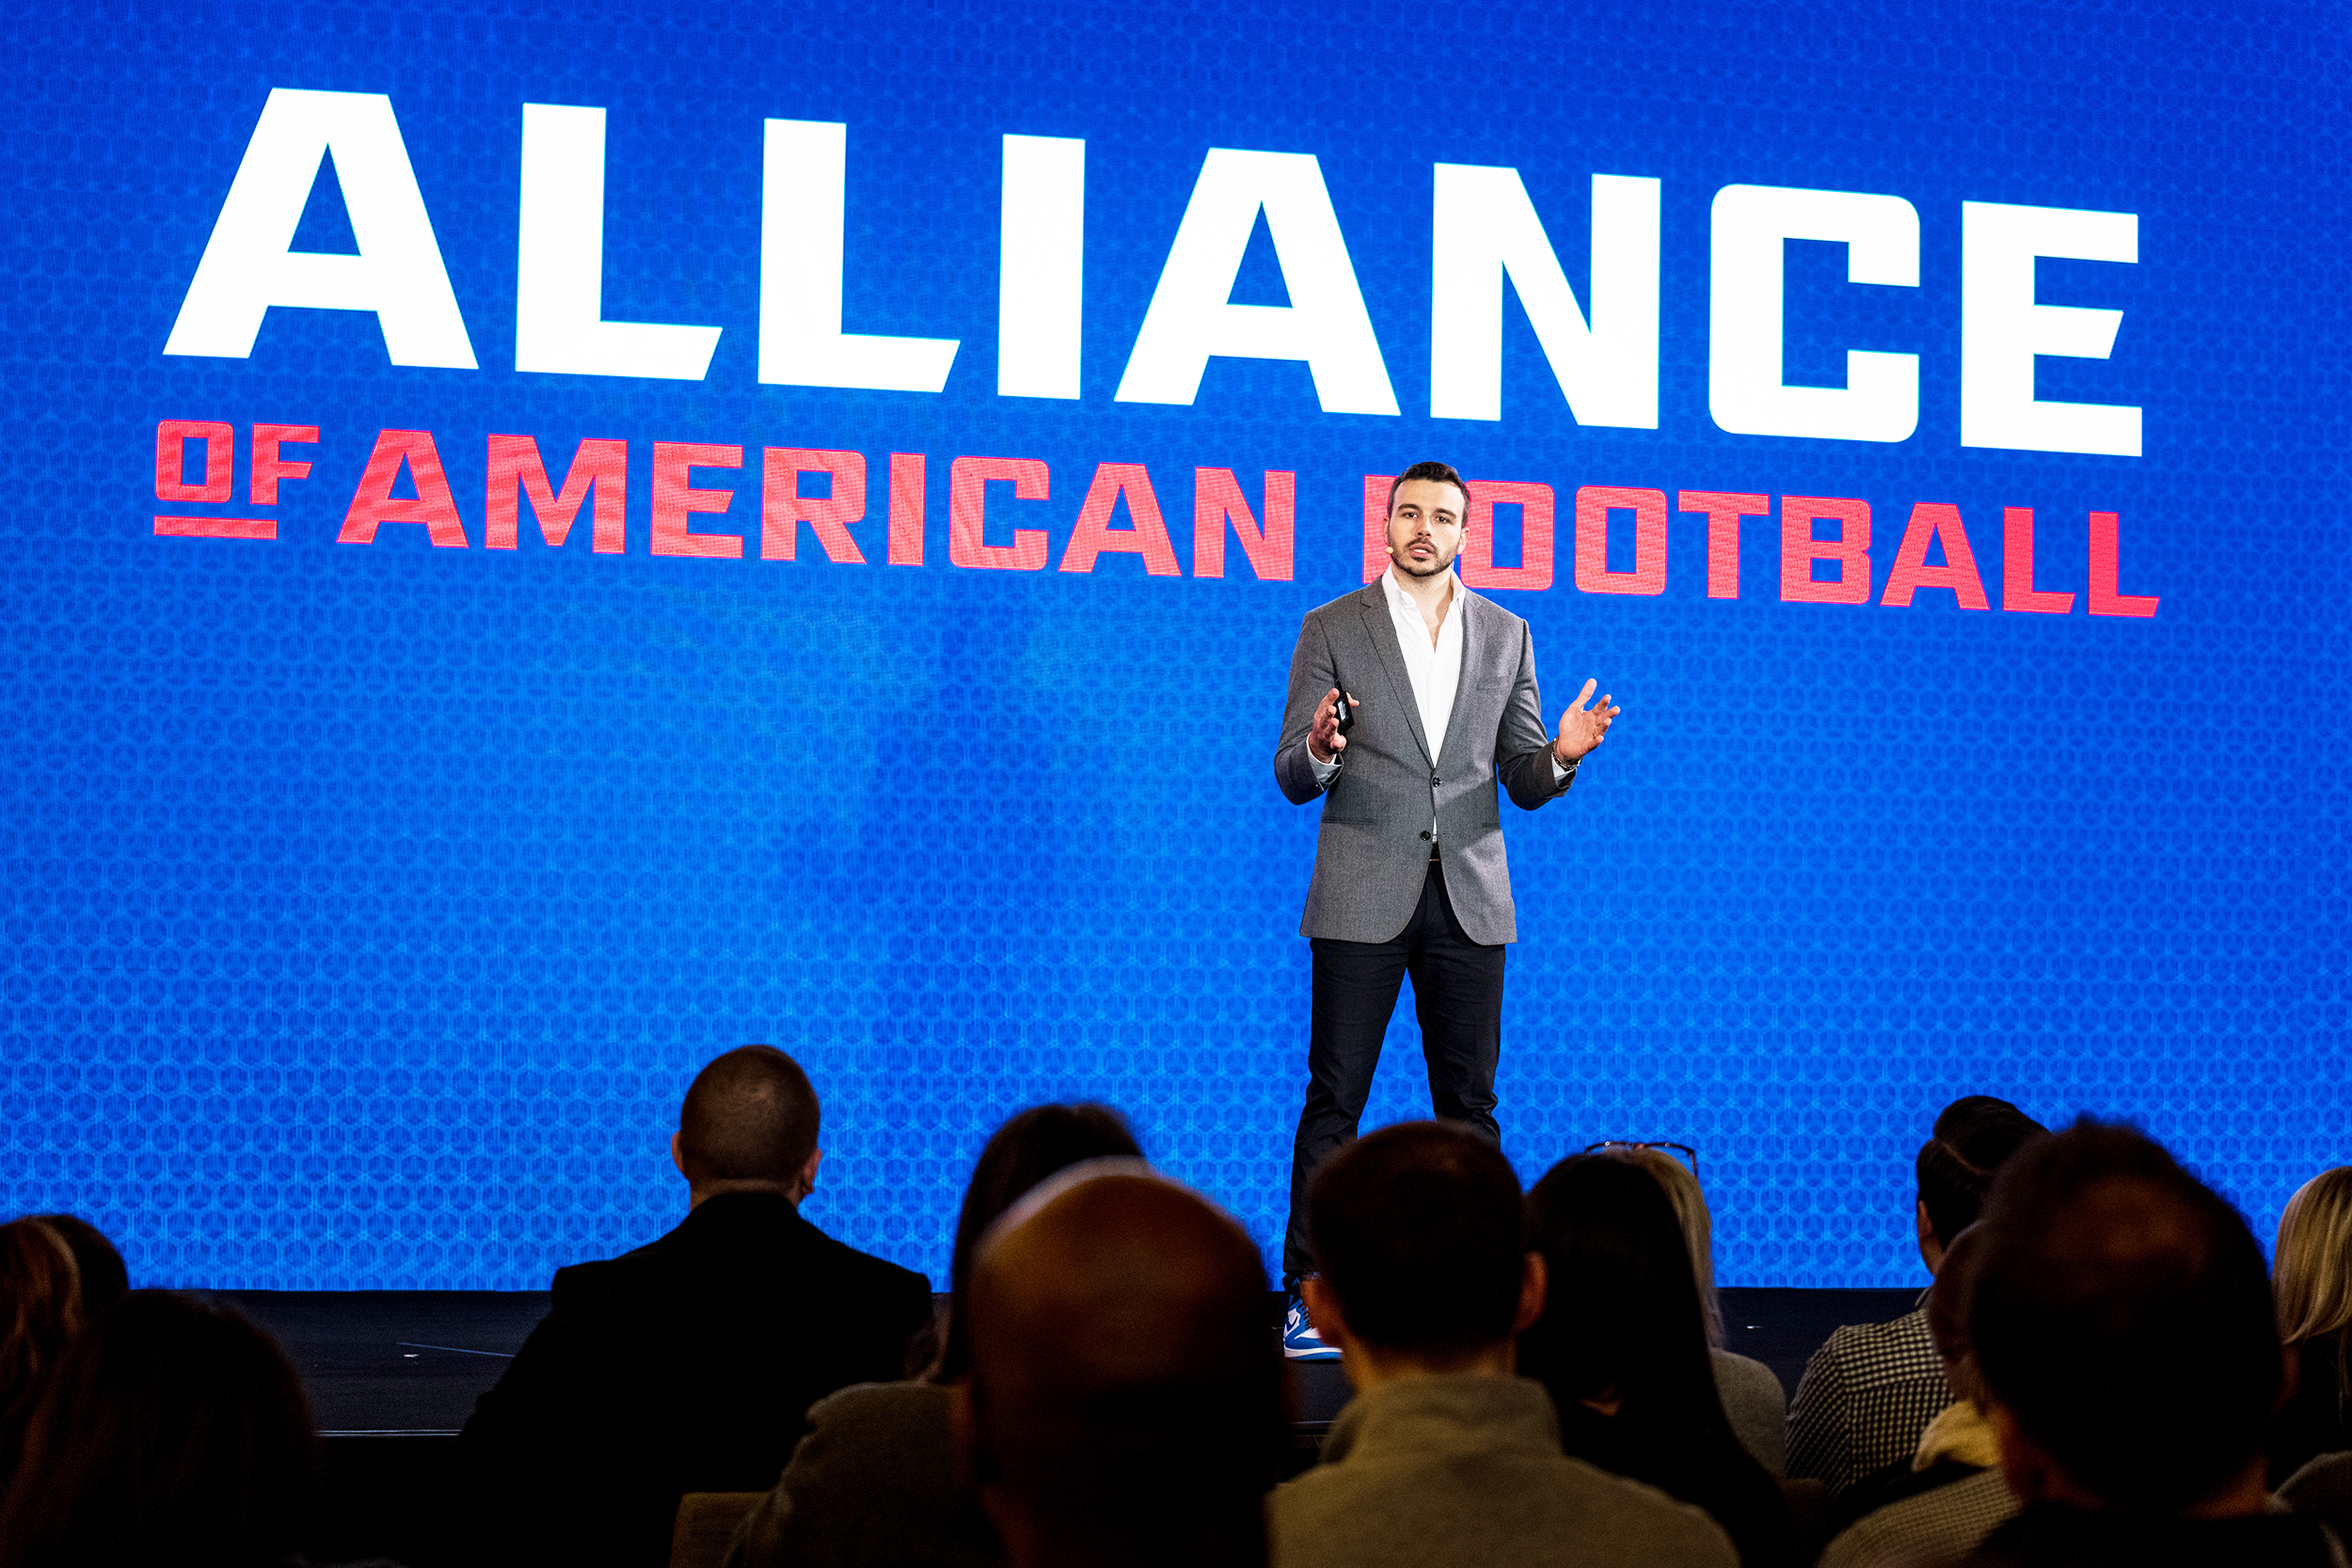 Alliance of American Football founder Charlie Ebersol addresses his audience at a conference to discuss the new league in March 2018. Ebersol is a member of the league's leadership board along with other well-known names like former NFL general manager Bill Polian (courtesy of Creative Commons).